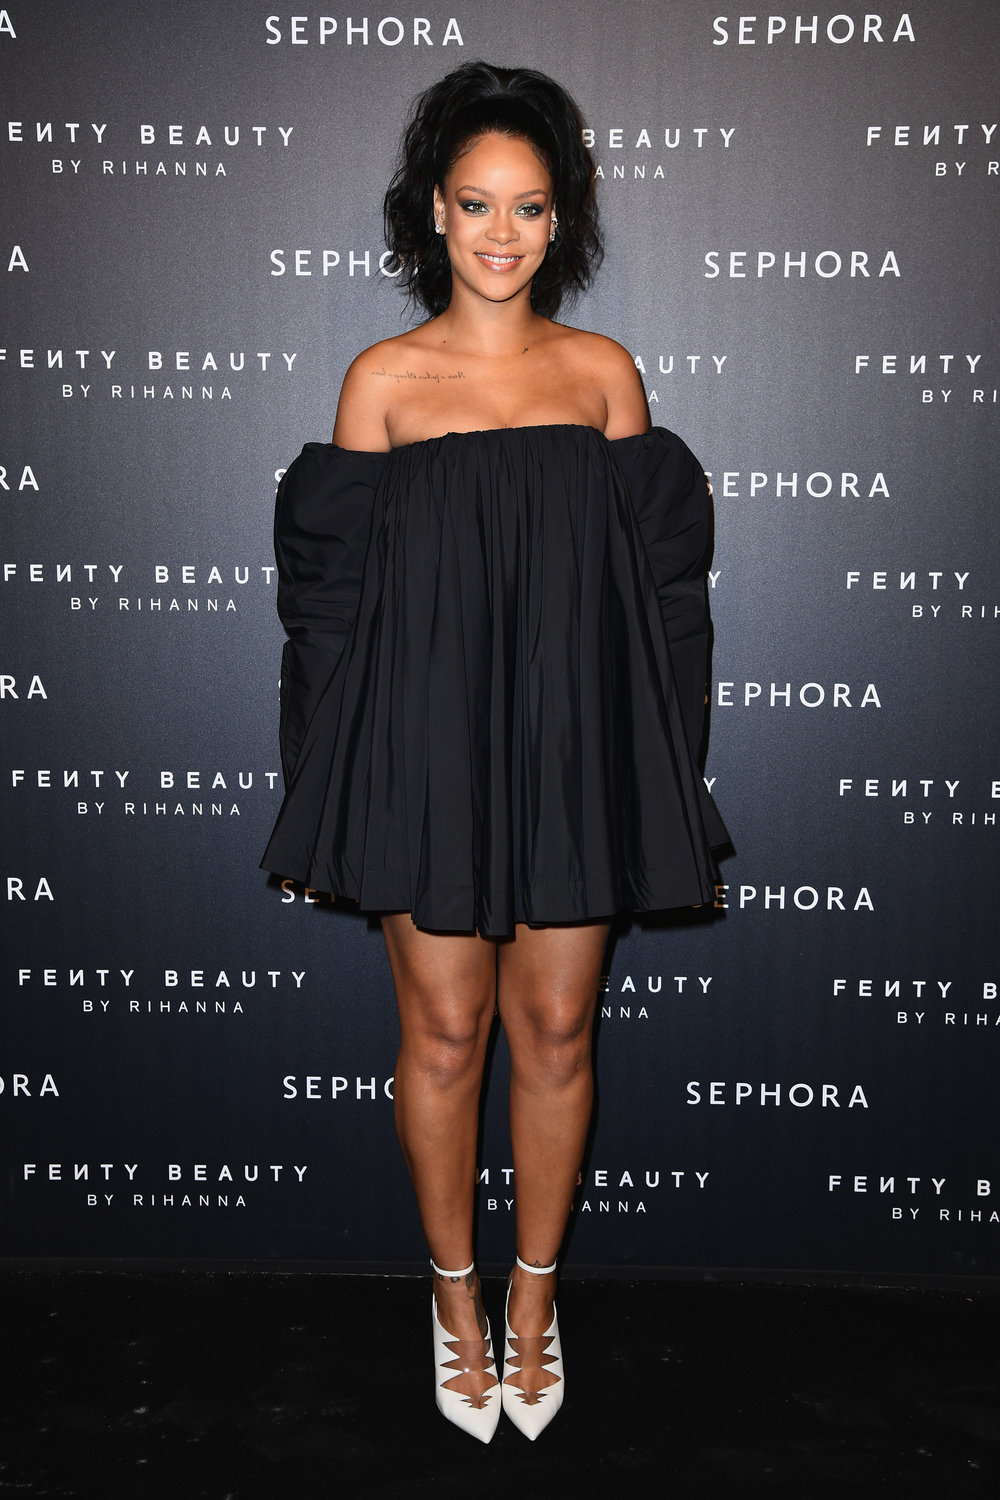 Rihanna - Fenty Beauty by Rihanna Sephora Paris Launch